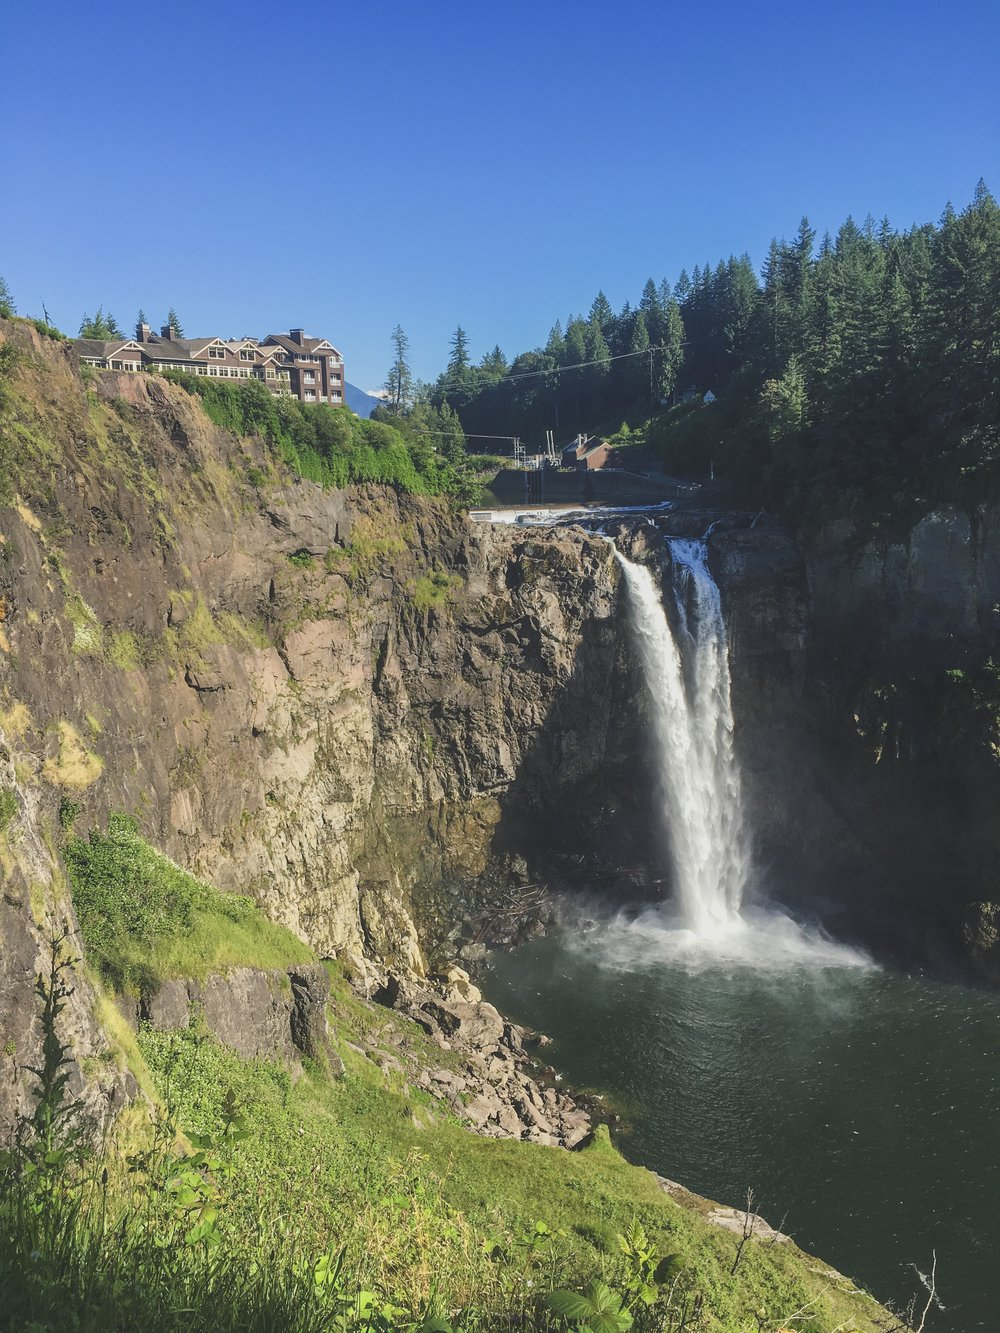 - As I passed through Washington, I made a stop at Snoqualmie Falls and the Salish Lodge. Gotta do all the touristy things too.